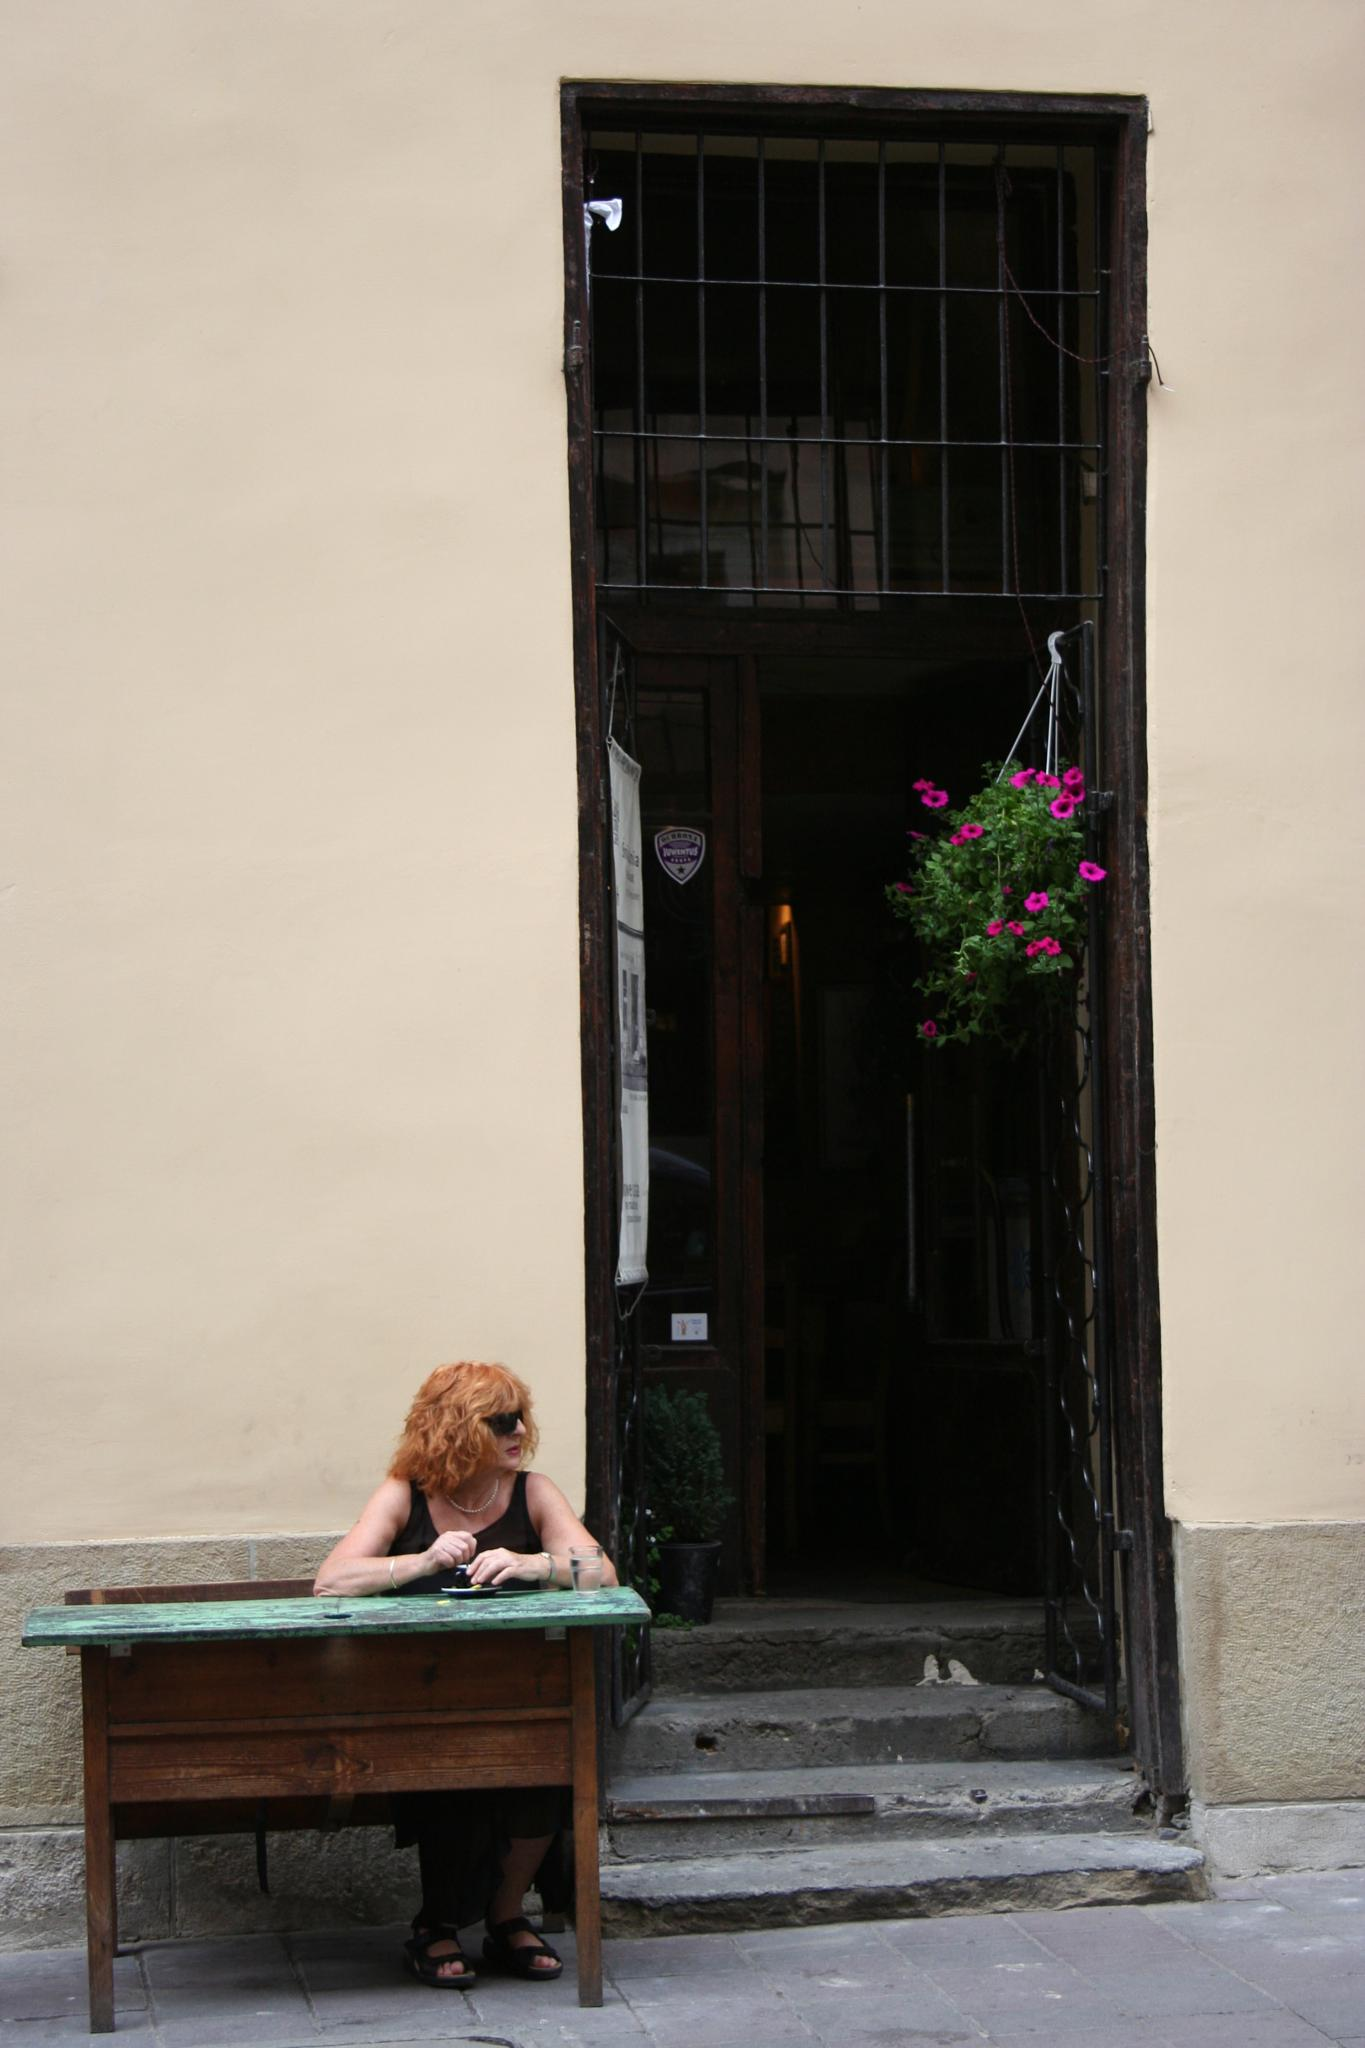 Lady in Krakow by fotografdenise